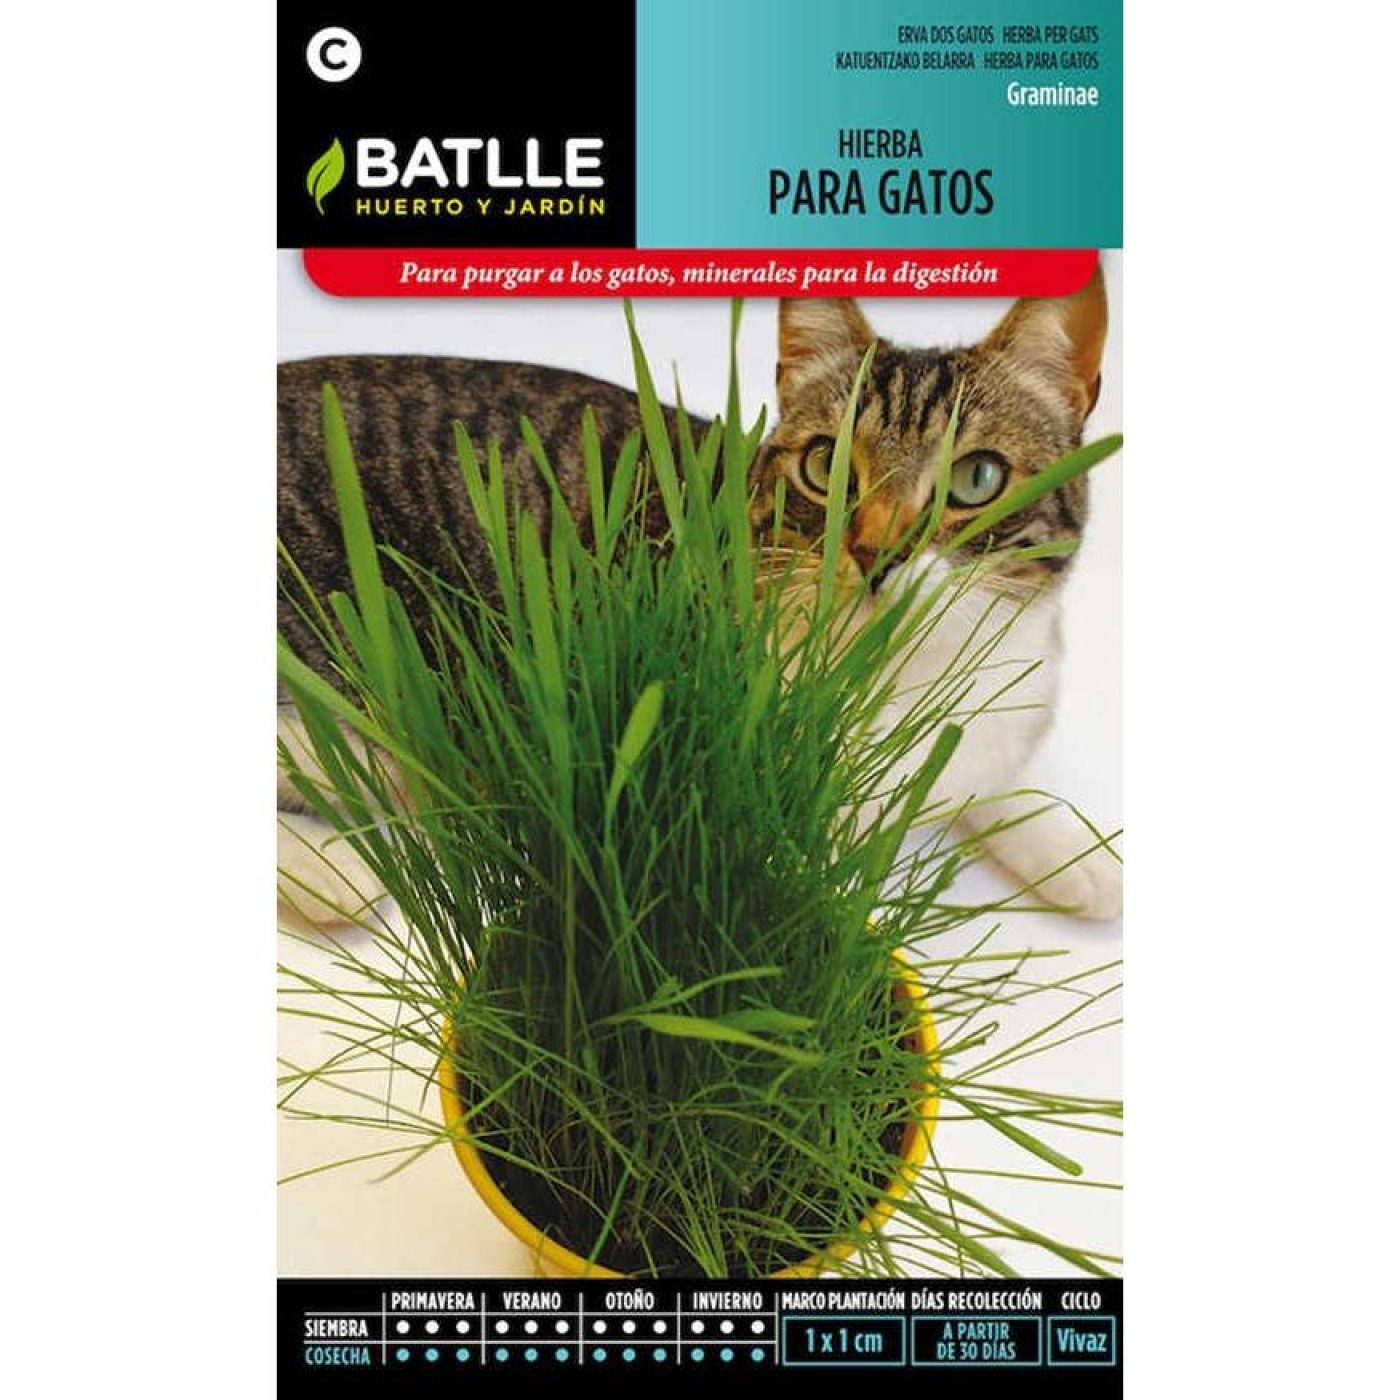 Graines d 39 herbe chat sur planeta huerto - Herbe a chat graine ...